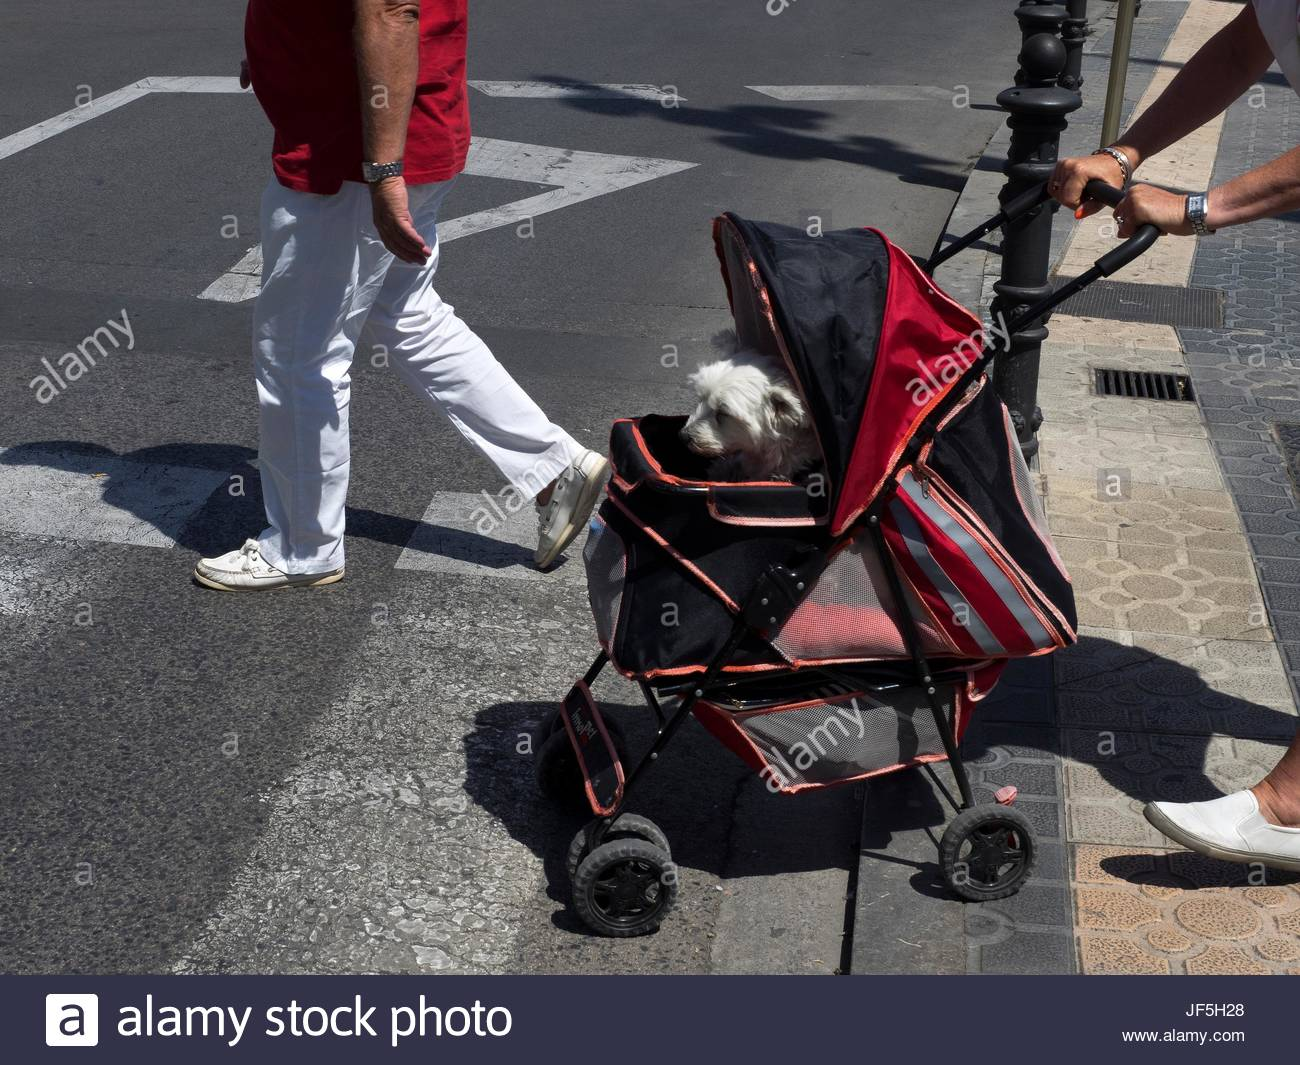 A dog in a stroller is pushed into a crosswalk. - Stock Image